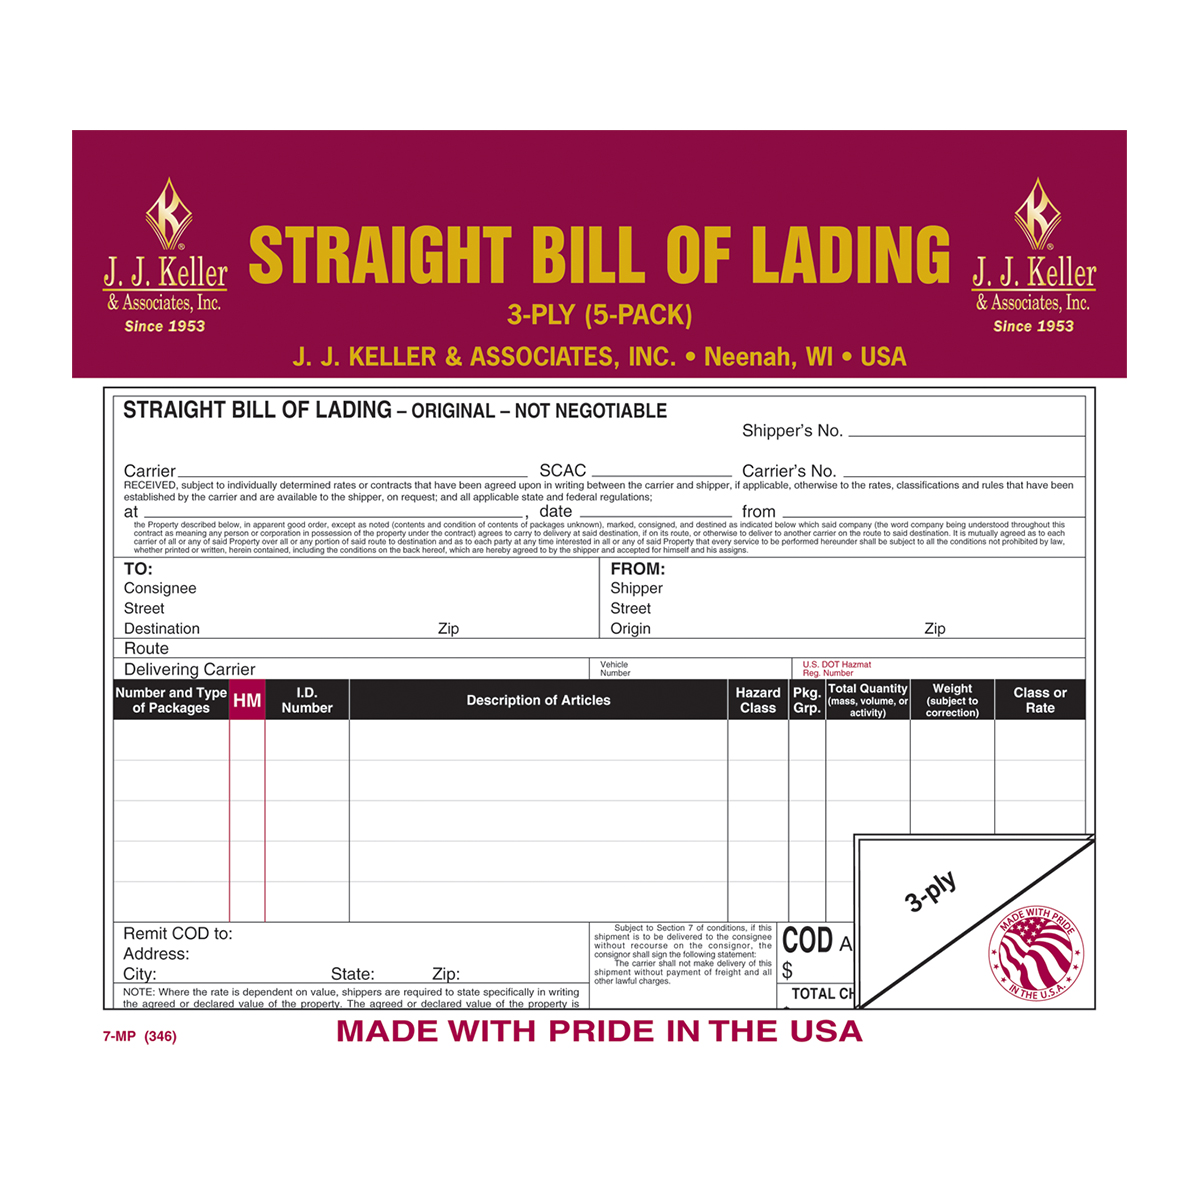 Straight Bills of Lading